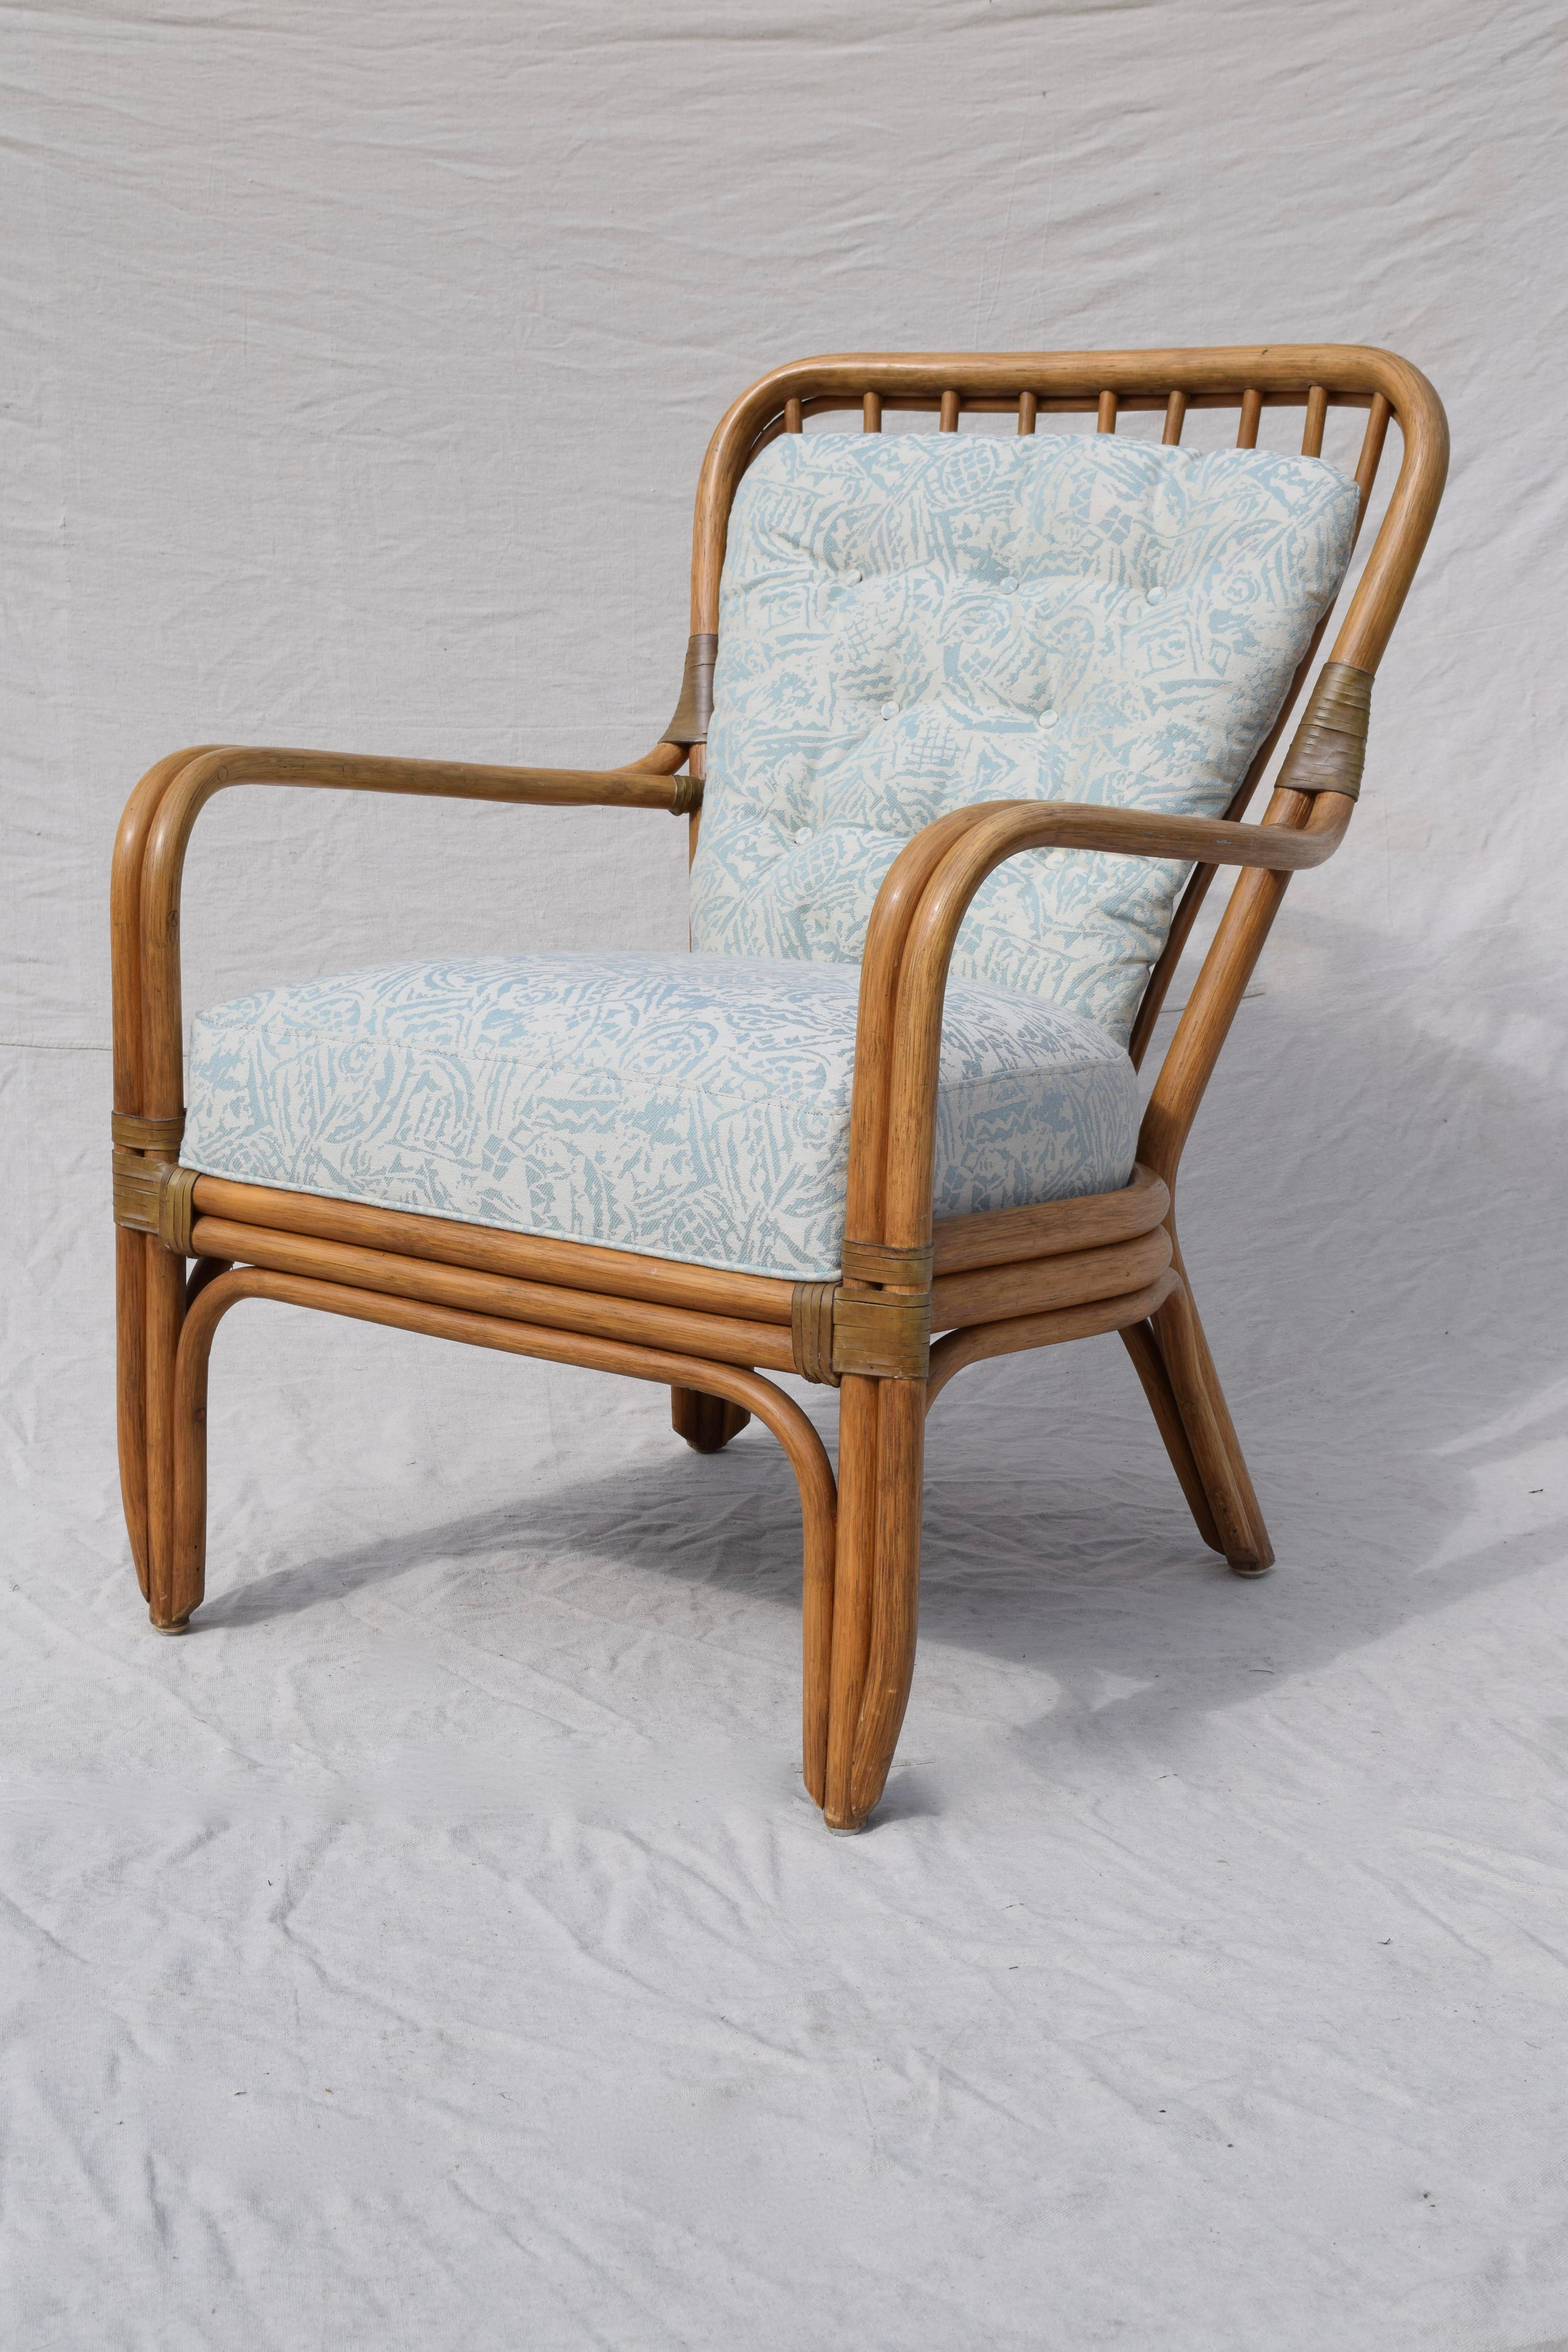 Merveilleux Palecek Large Pole Bent Bamboo Chairs   A Pair For Sale In Philadelphia    Image 6